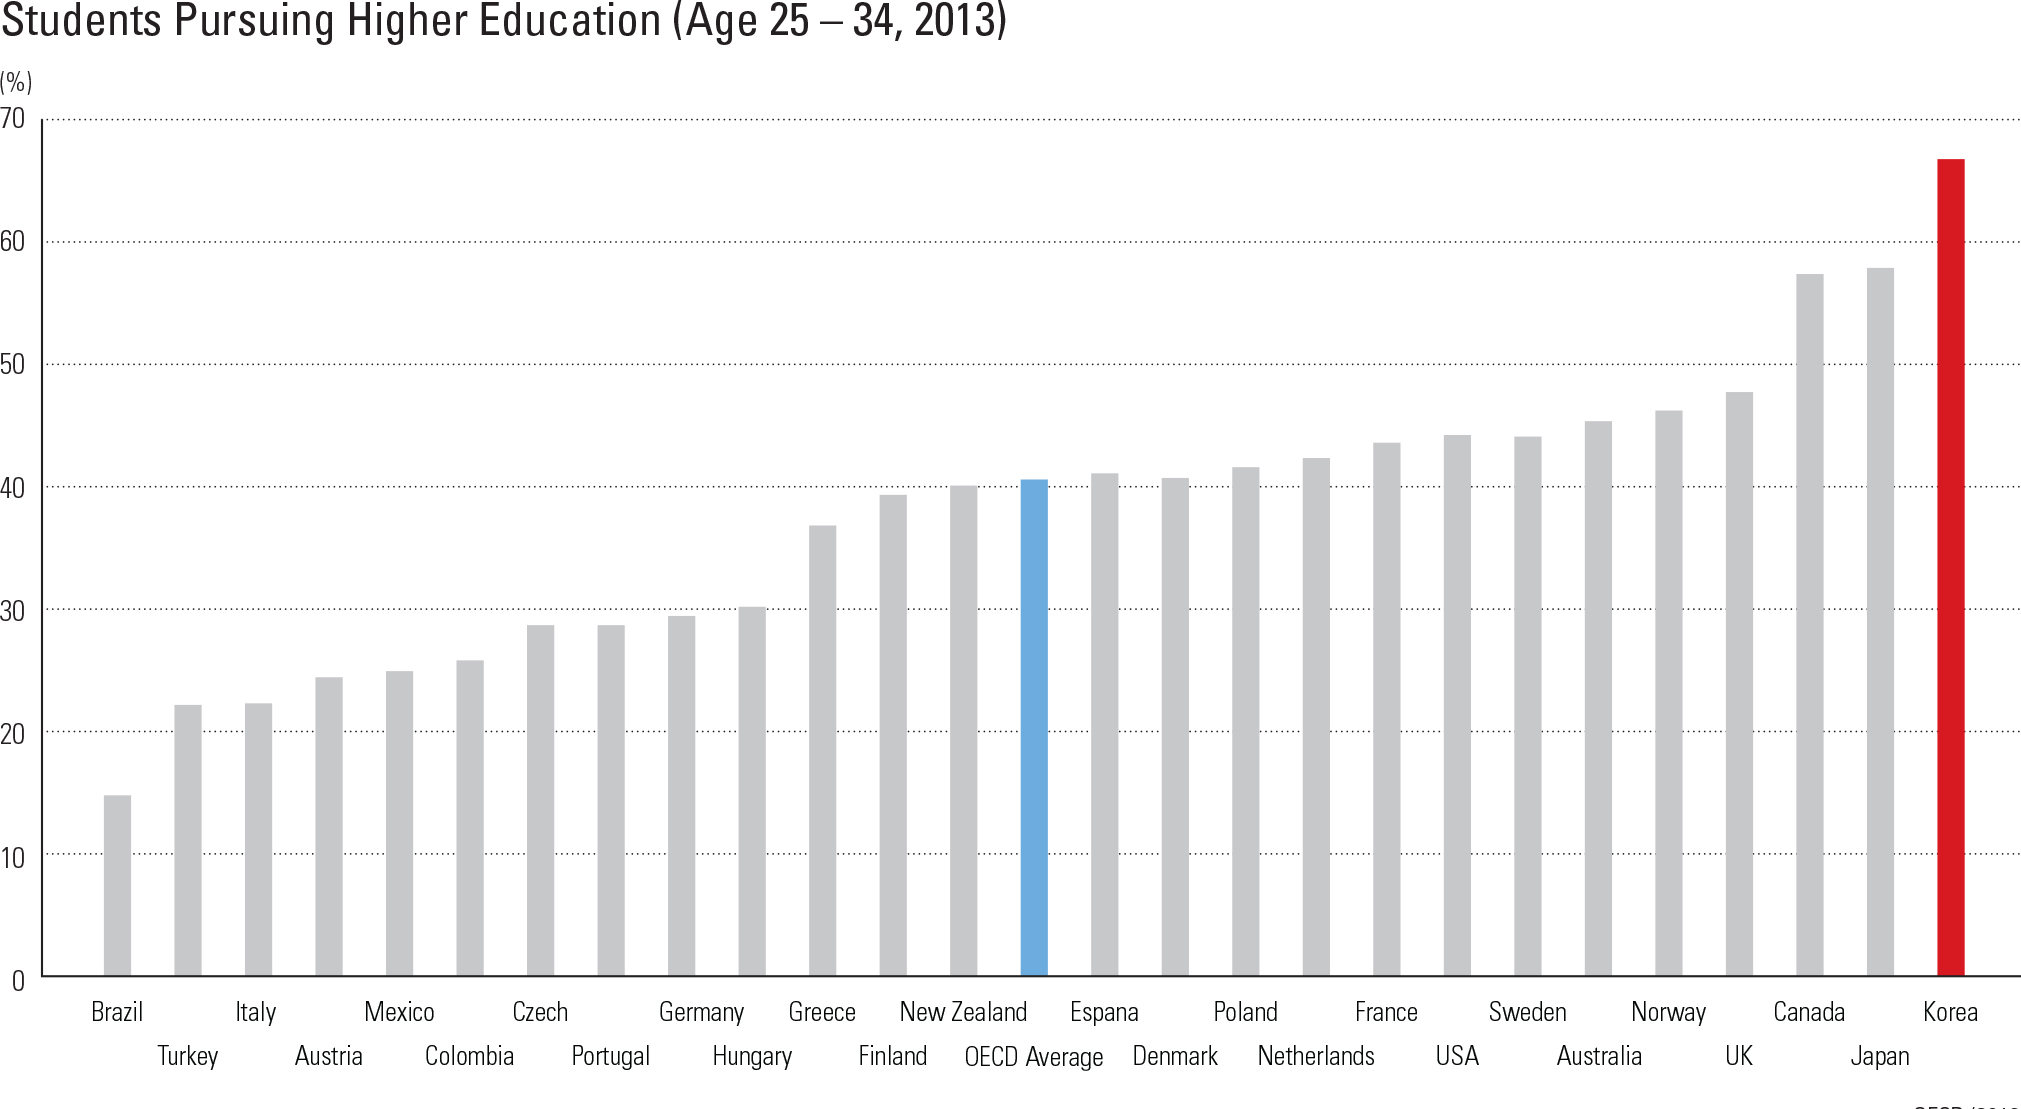 Students Pursuing Higher Education (Age 25 – 34, 2013)